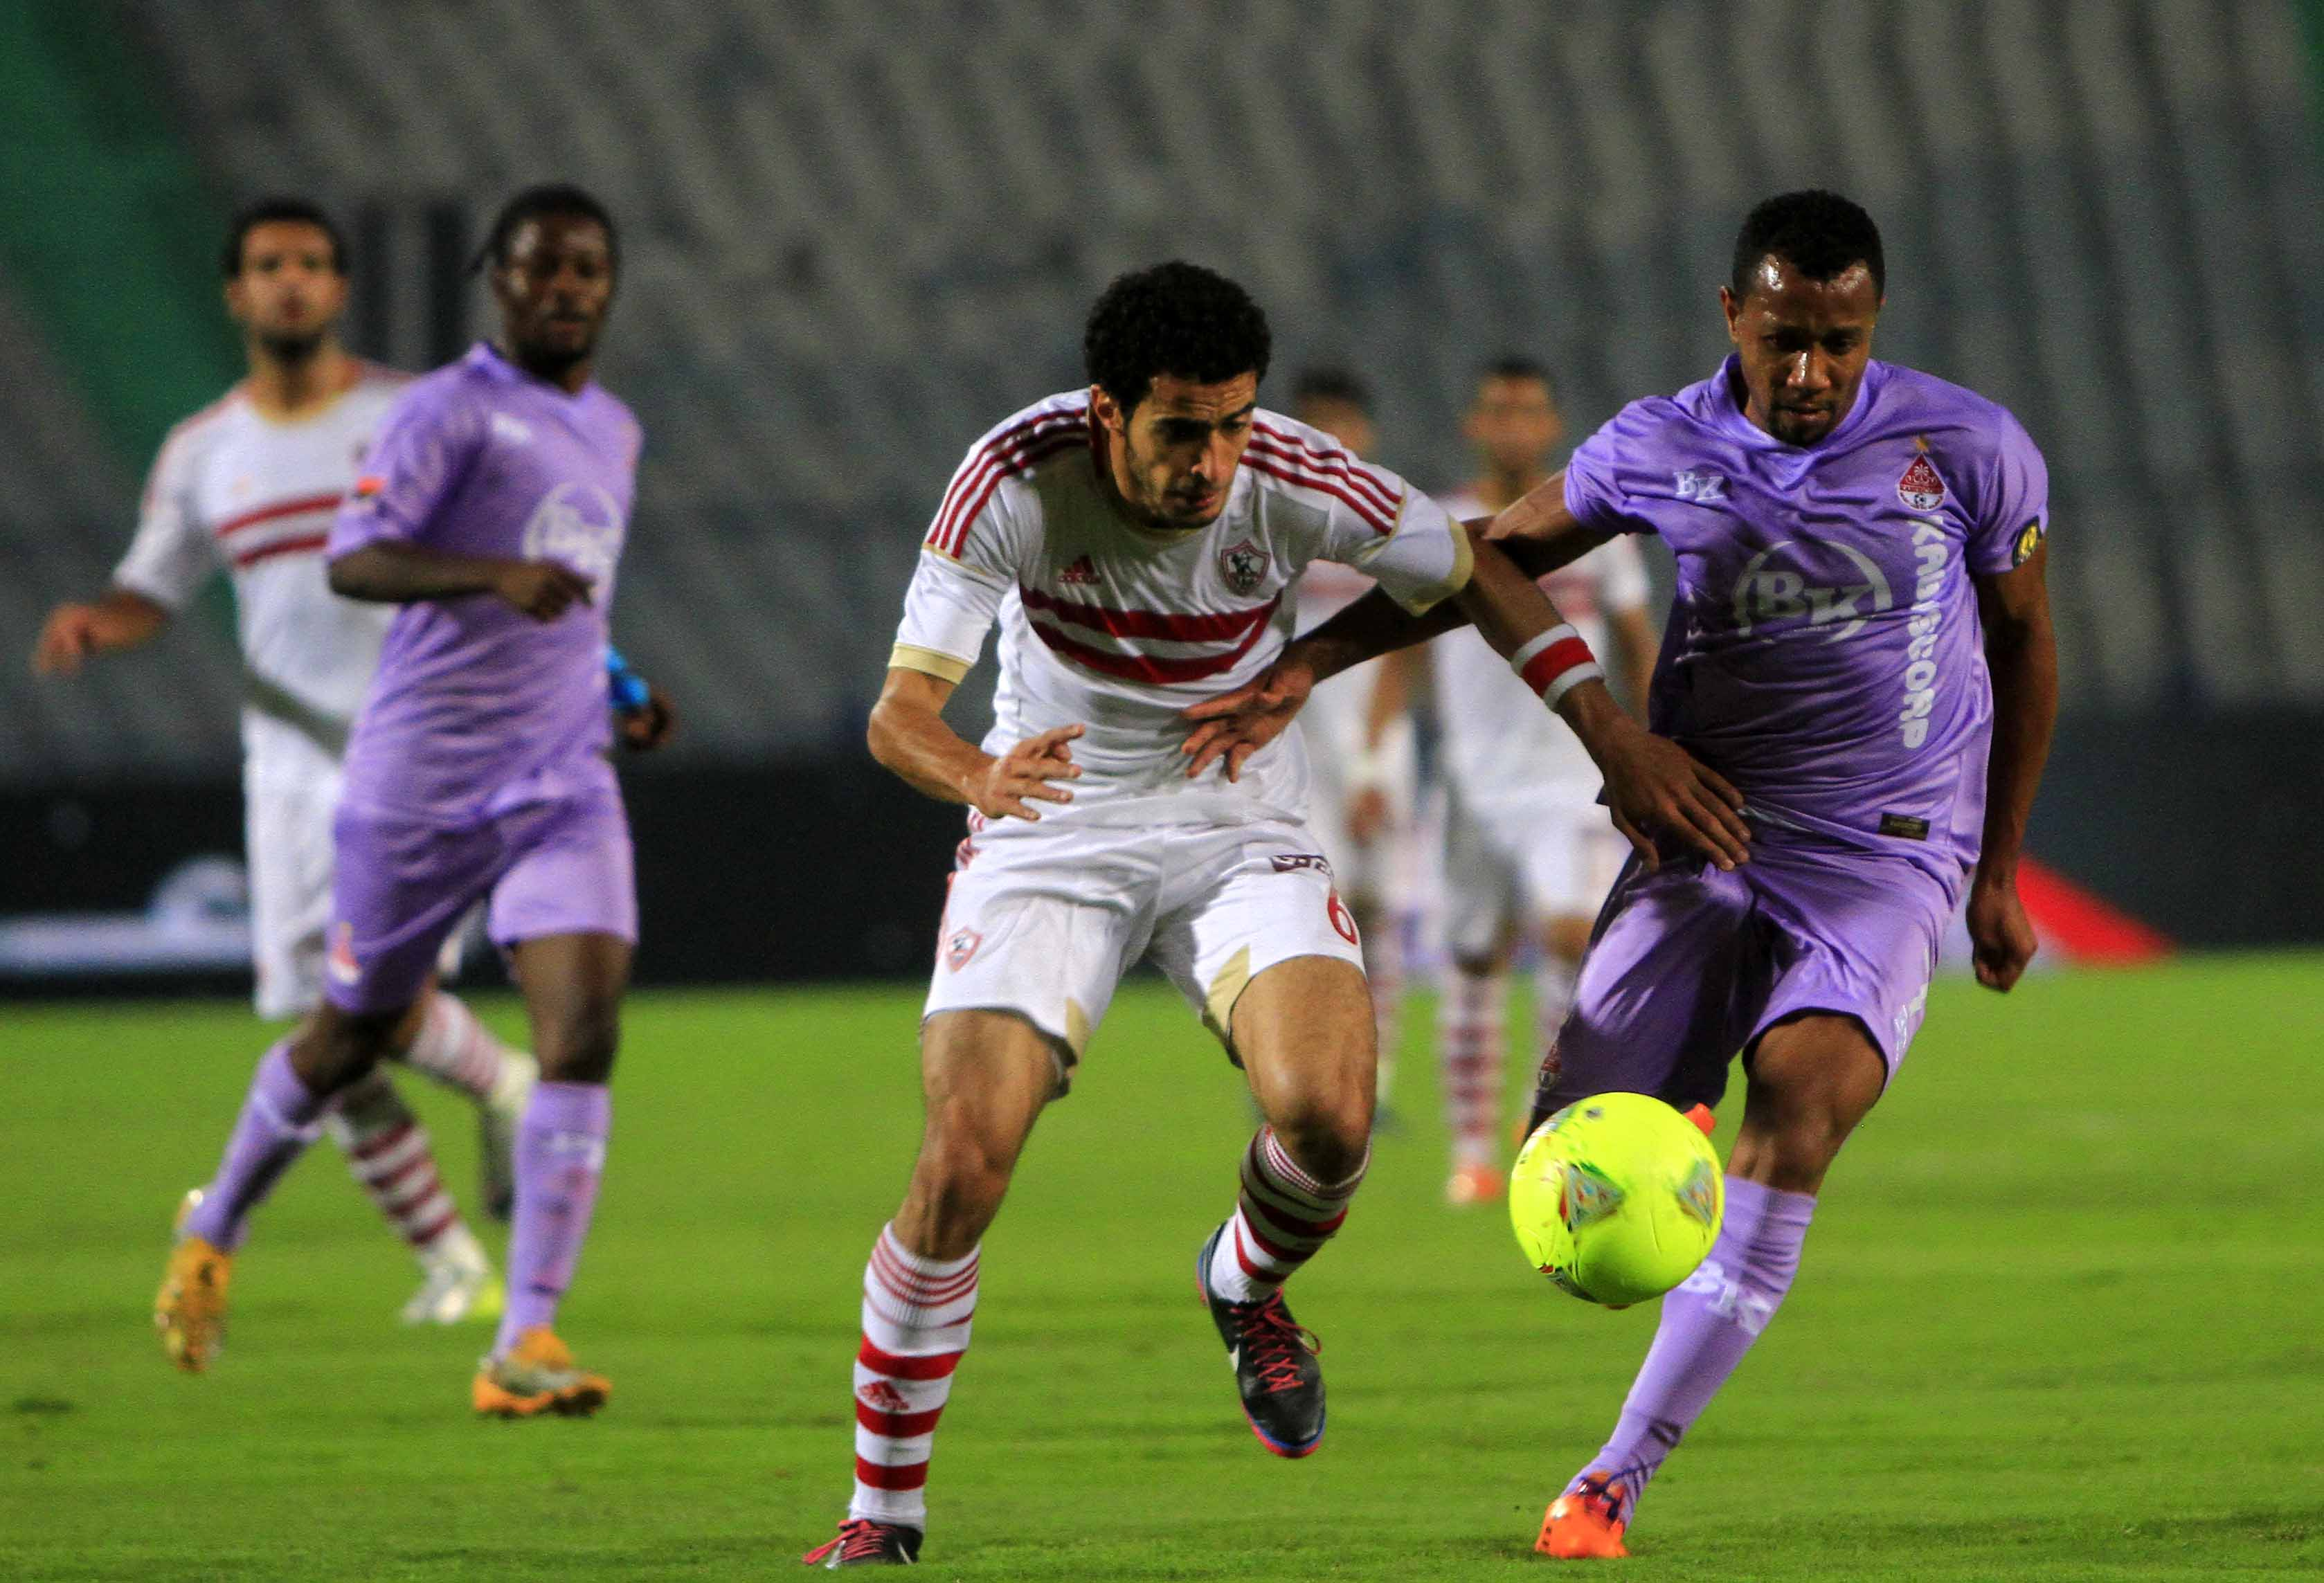 Zamalek beat Angolan side Kabuscorp 1-0, a score-line that recently appointed Zamalek coach Ahmed Mido believes they can improve on in the upcoming second-leg in Angola, scheduled for Friday (Photo by Ahmed Al-Malky)